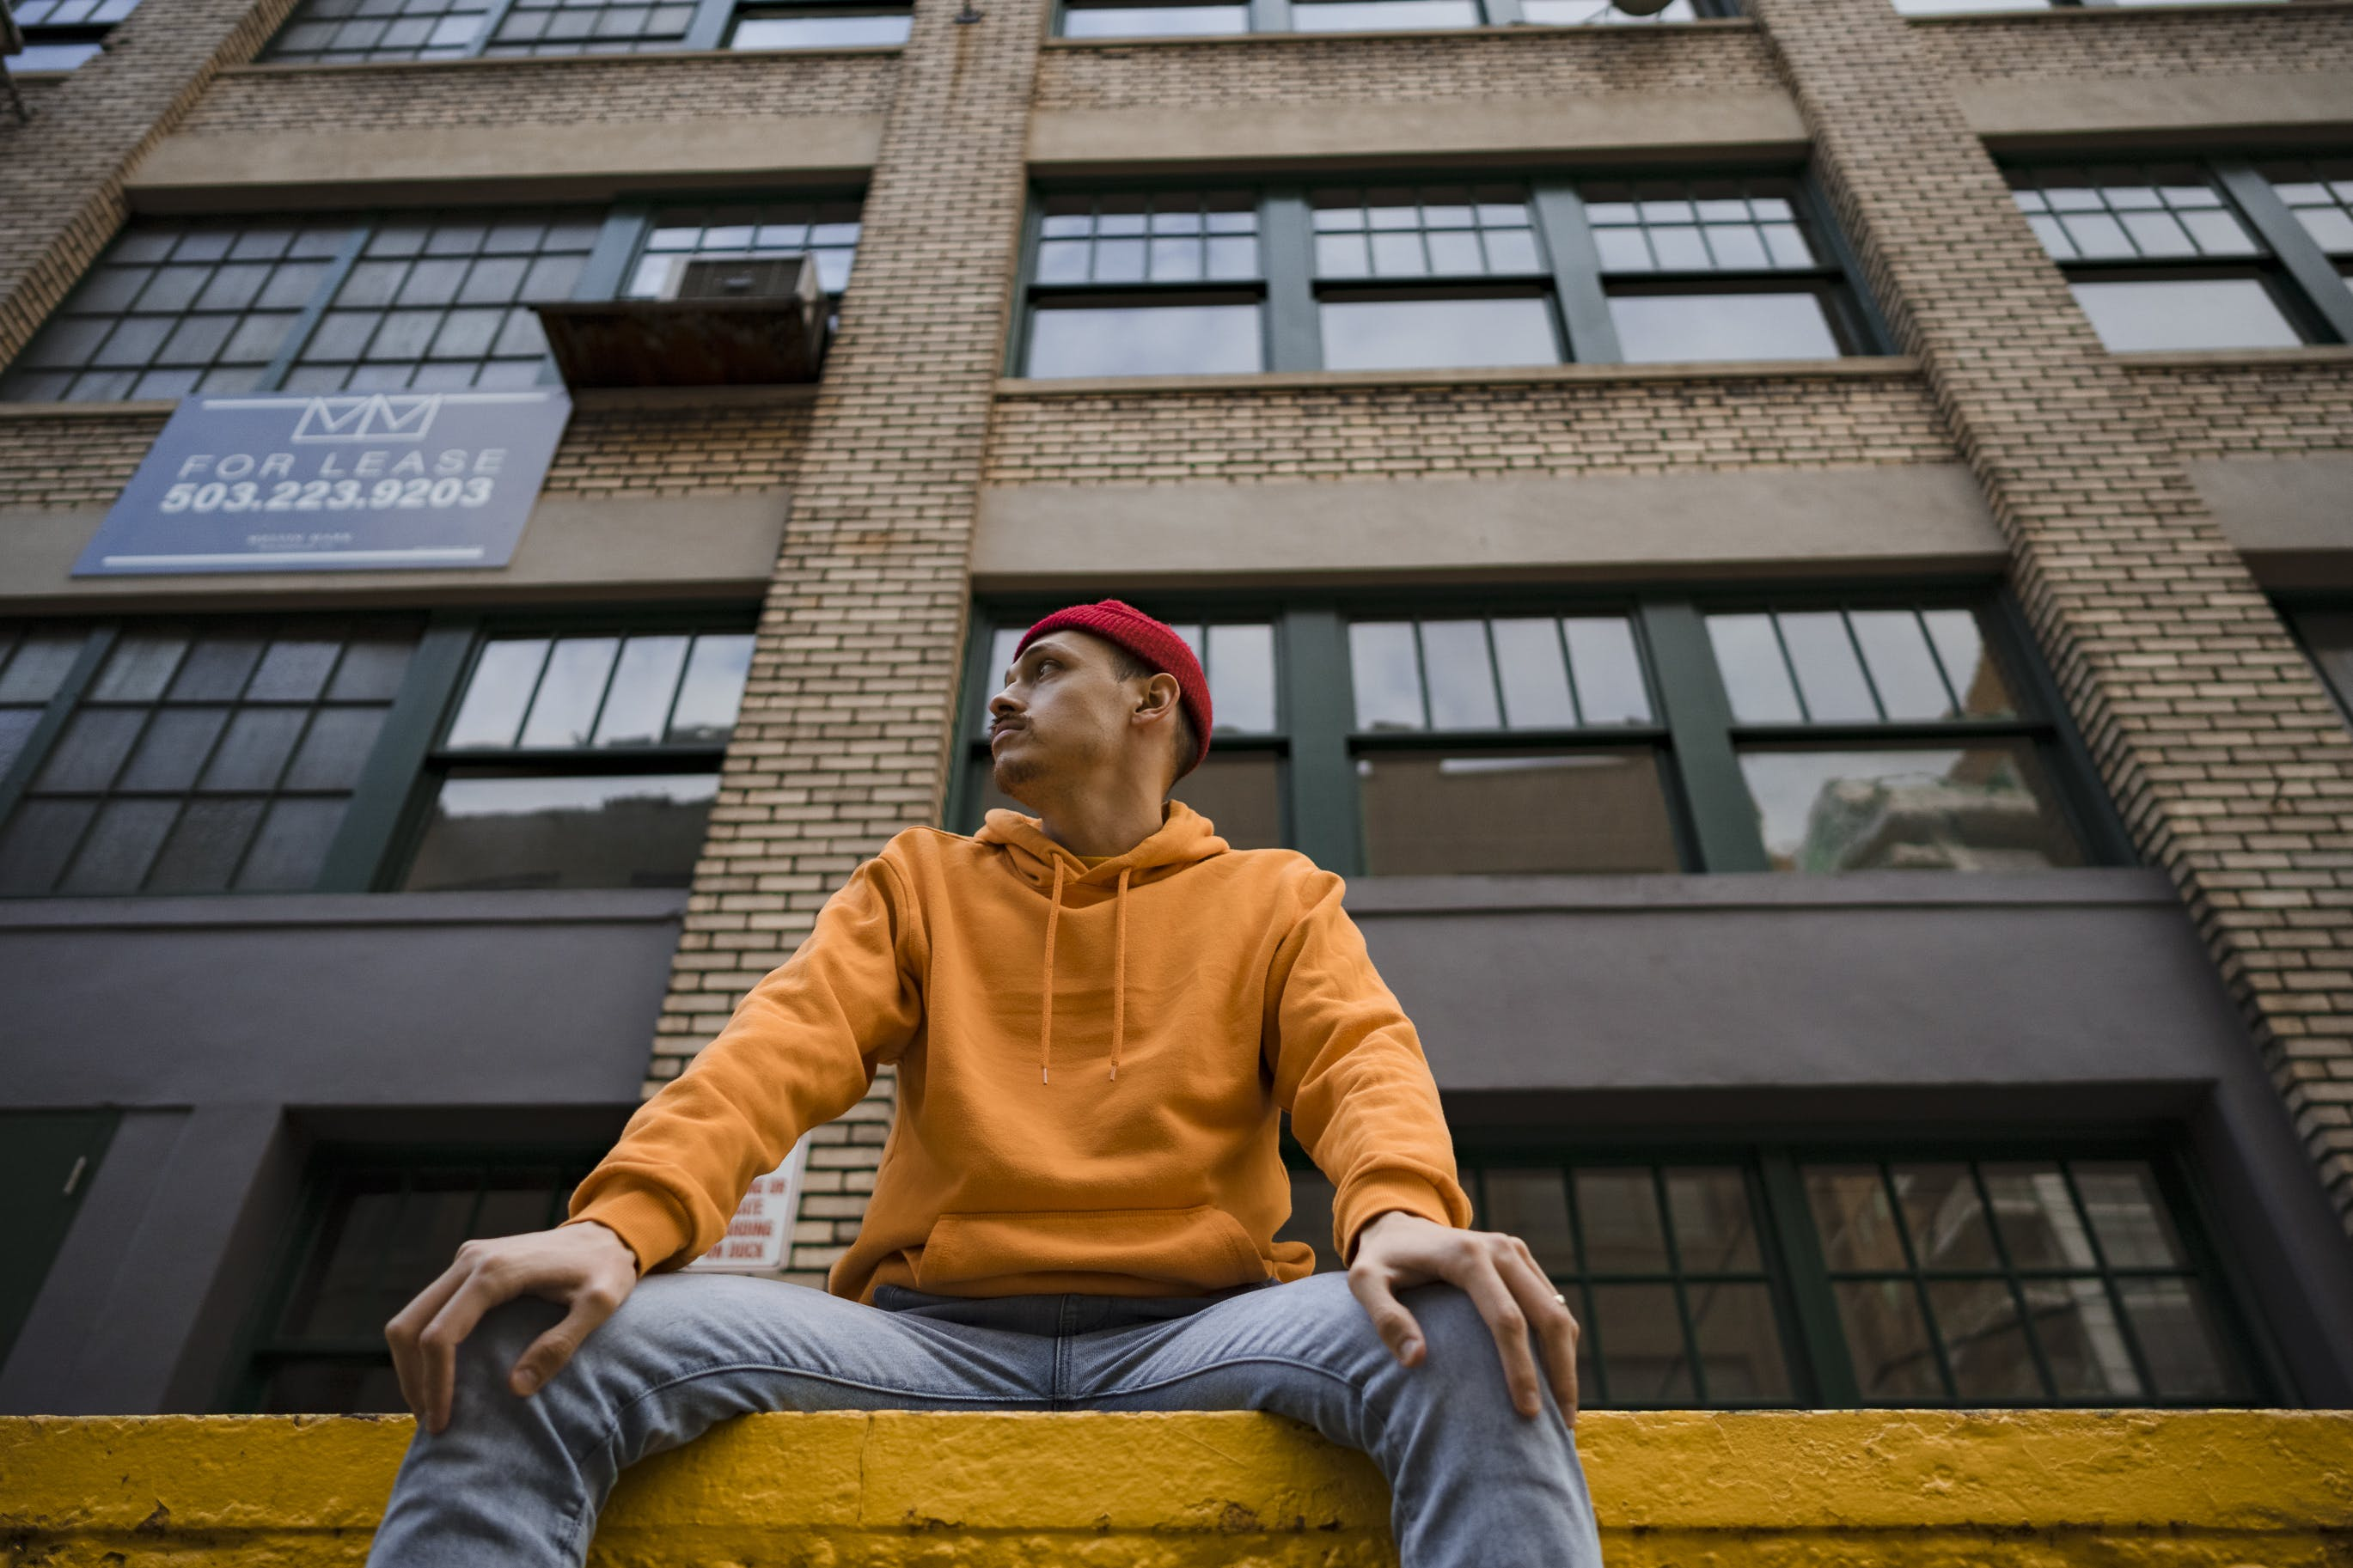 Man Sitting in Front of Brown High-rise Building